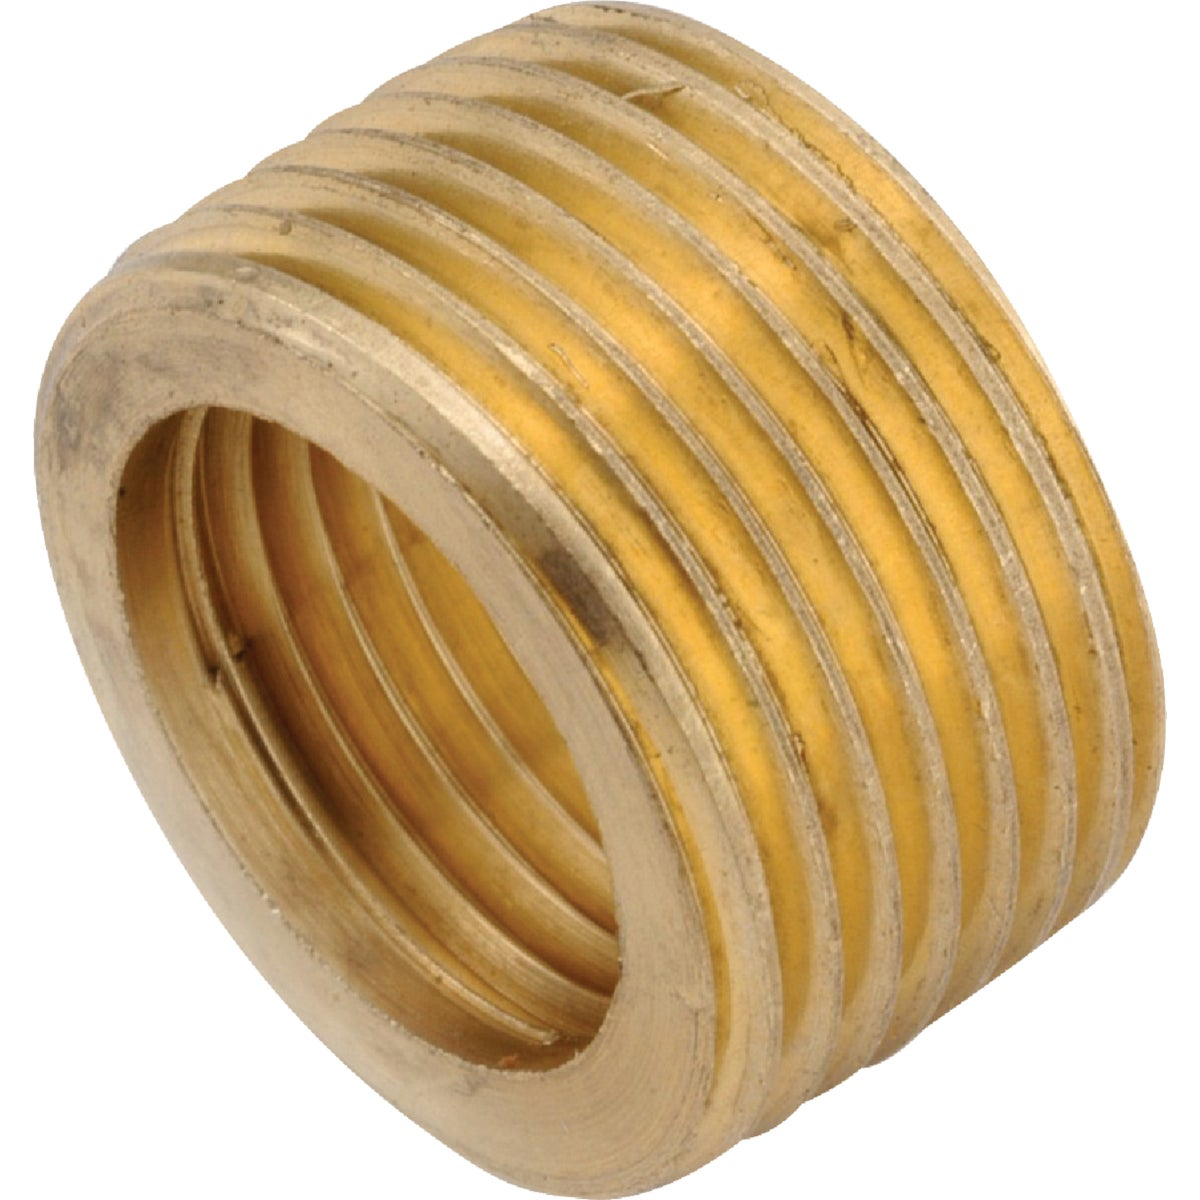 1/2X3/8 BRASS BUSHING - 736140-0806 by Anderson Metals Corp